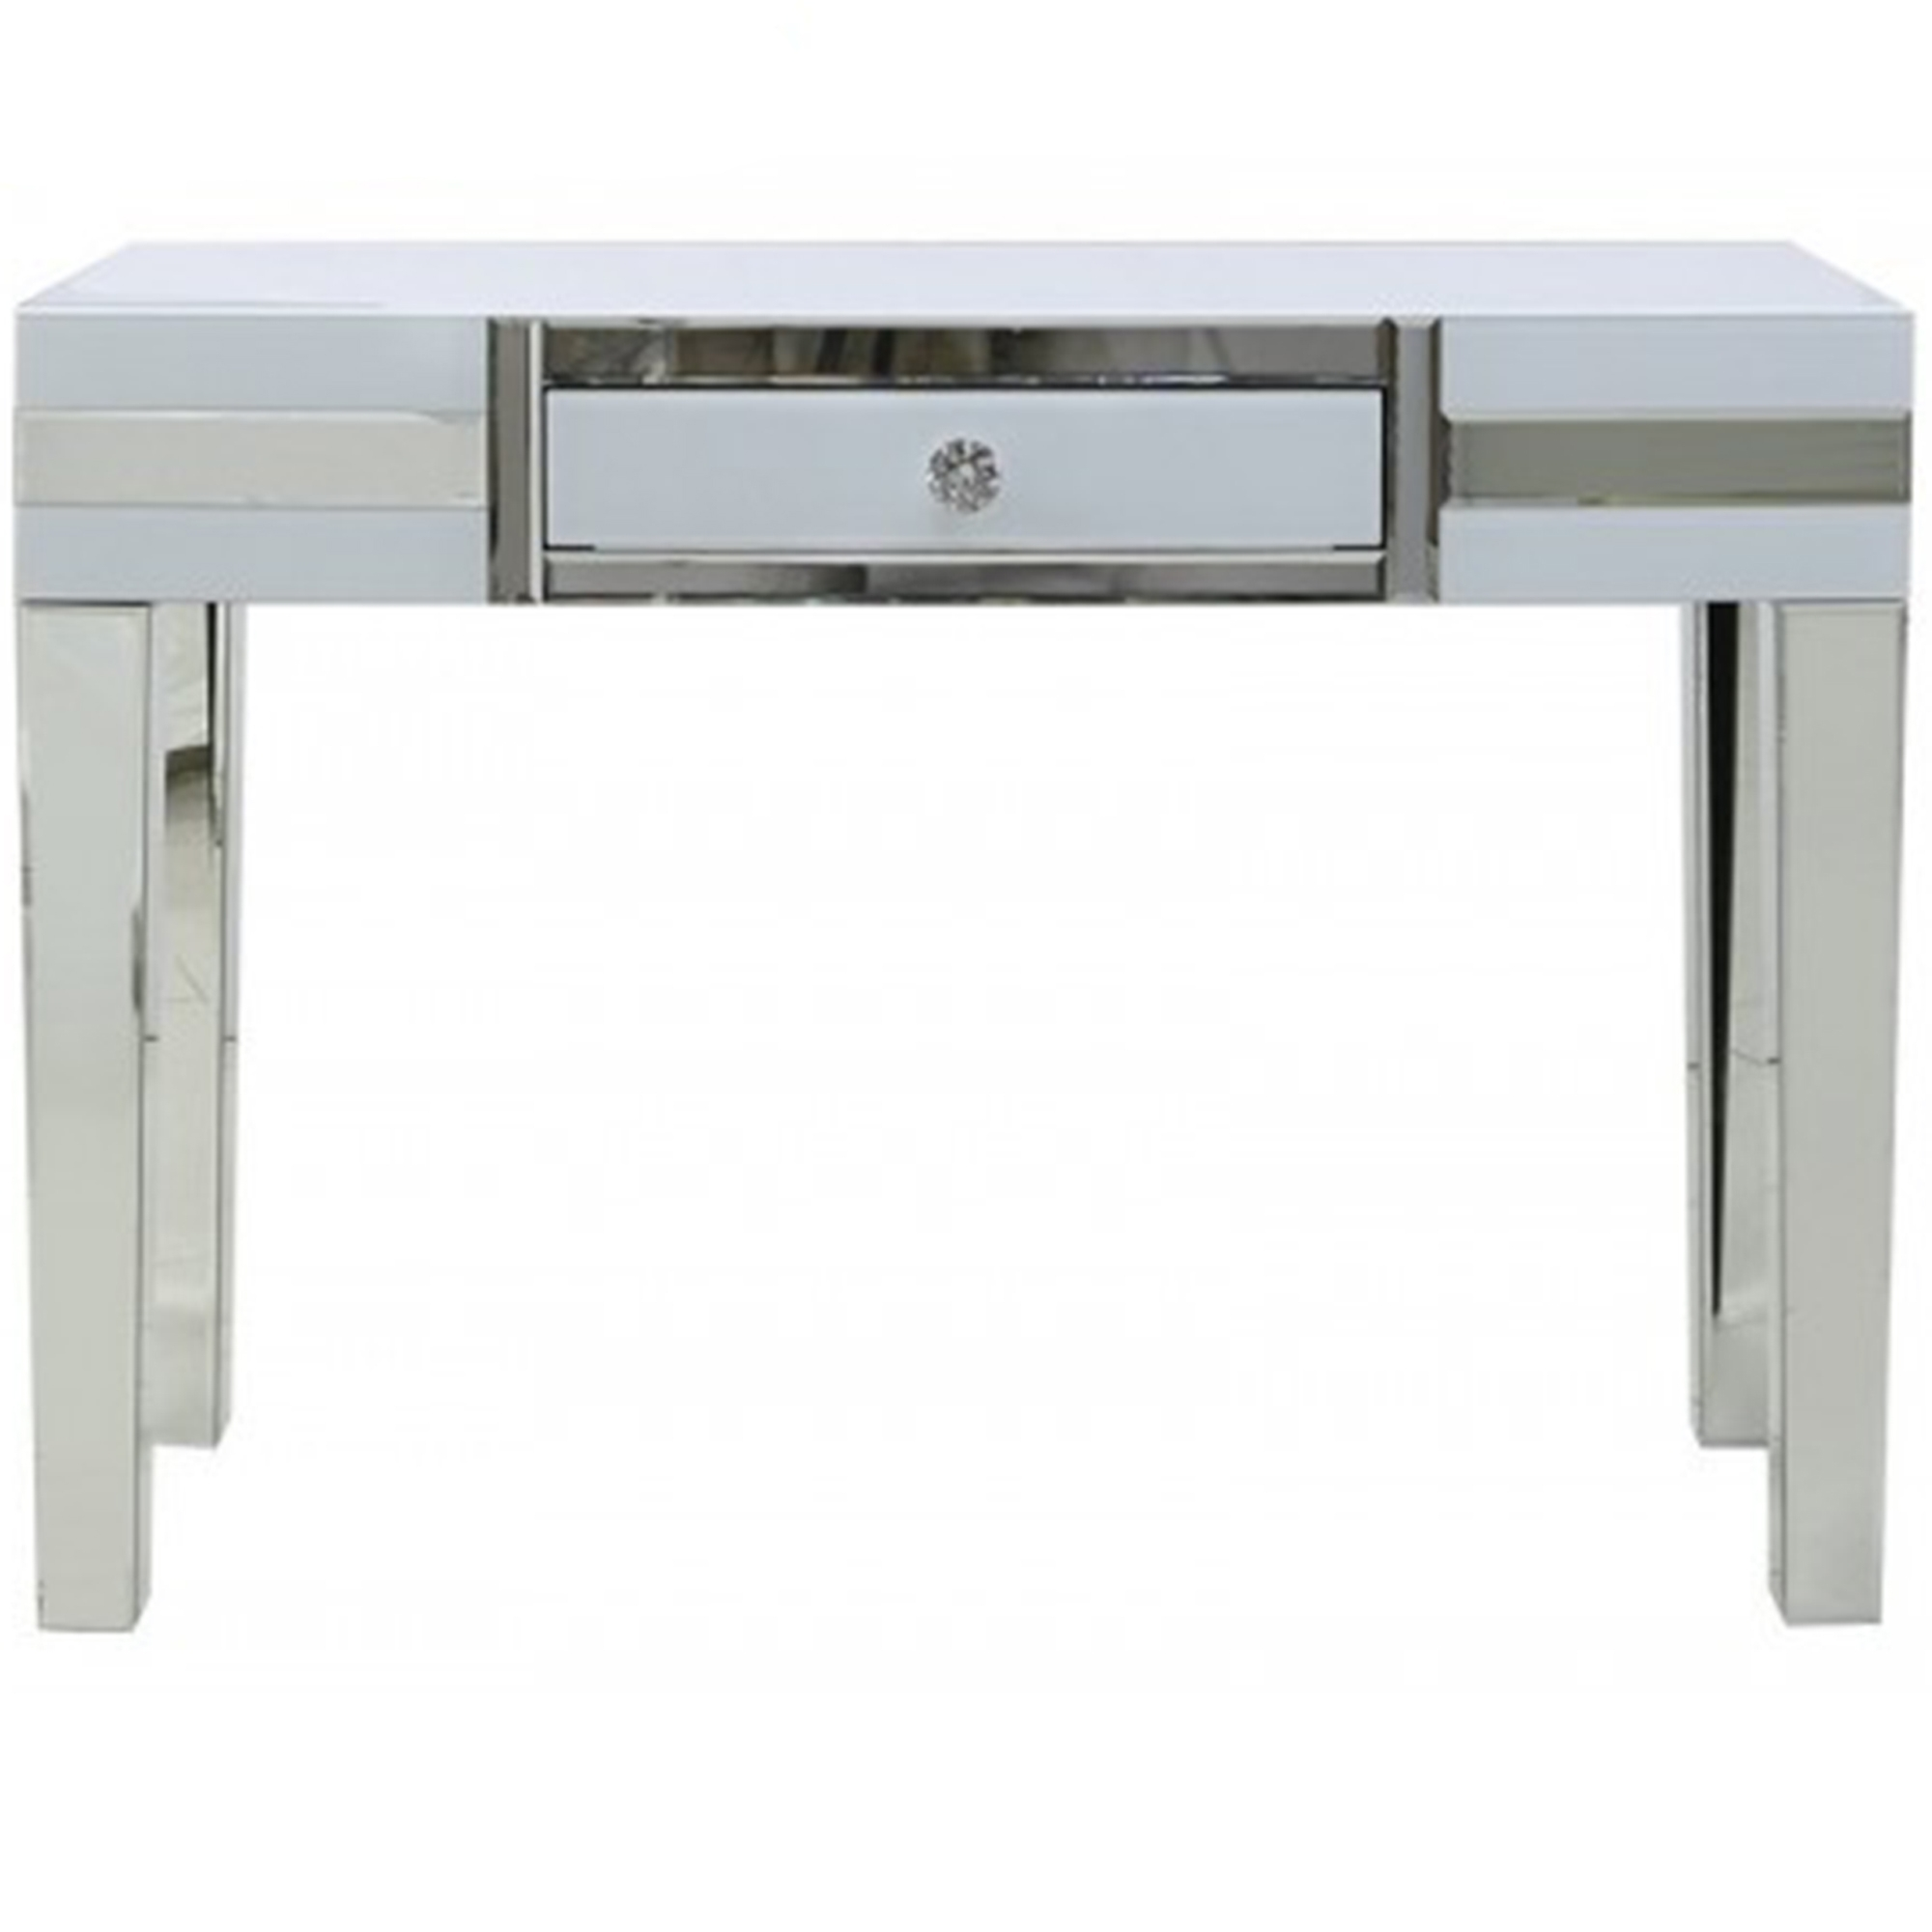 Savona white mirrored console table glass furniture online for White and glass console table